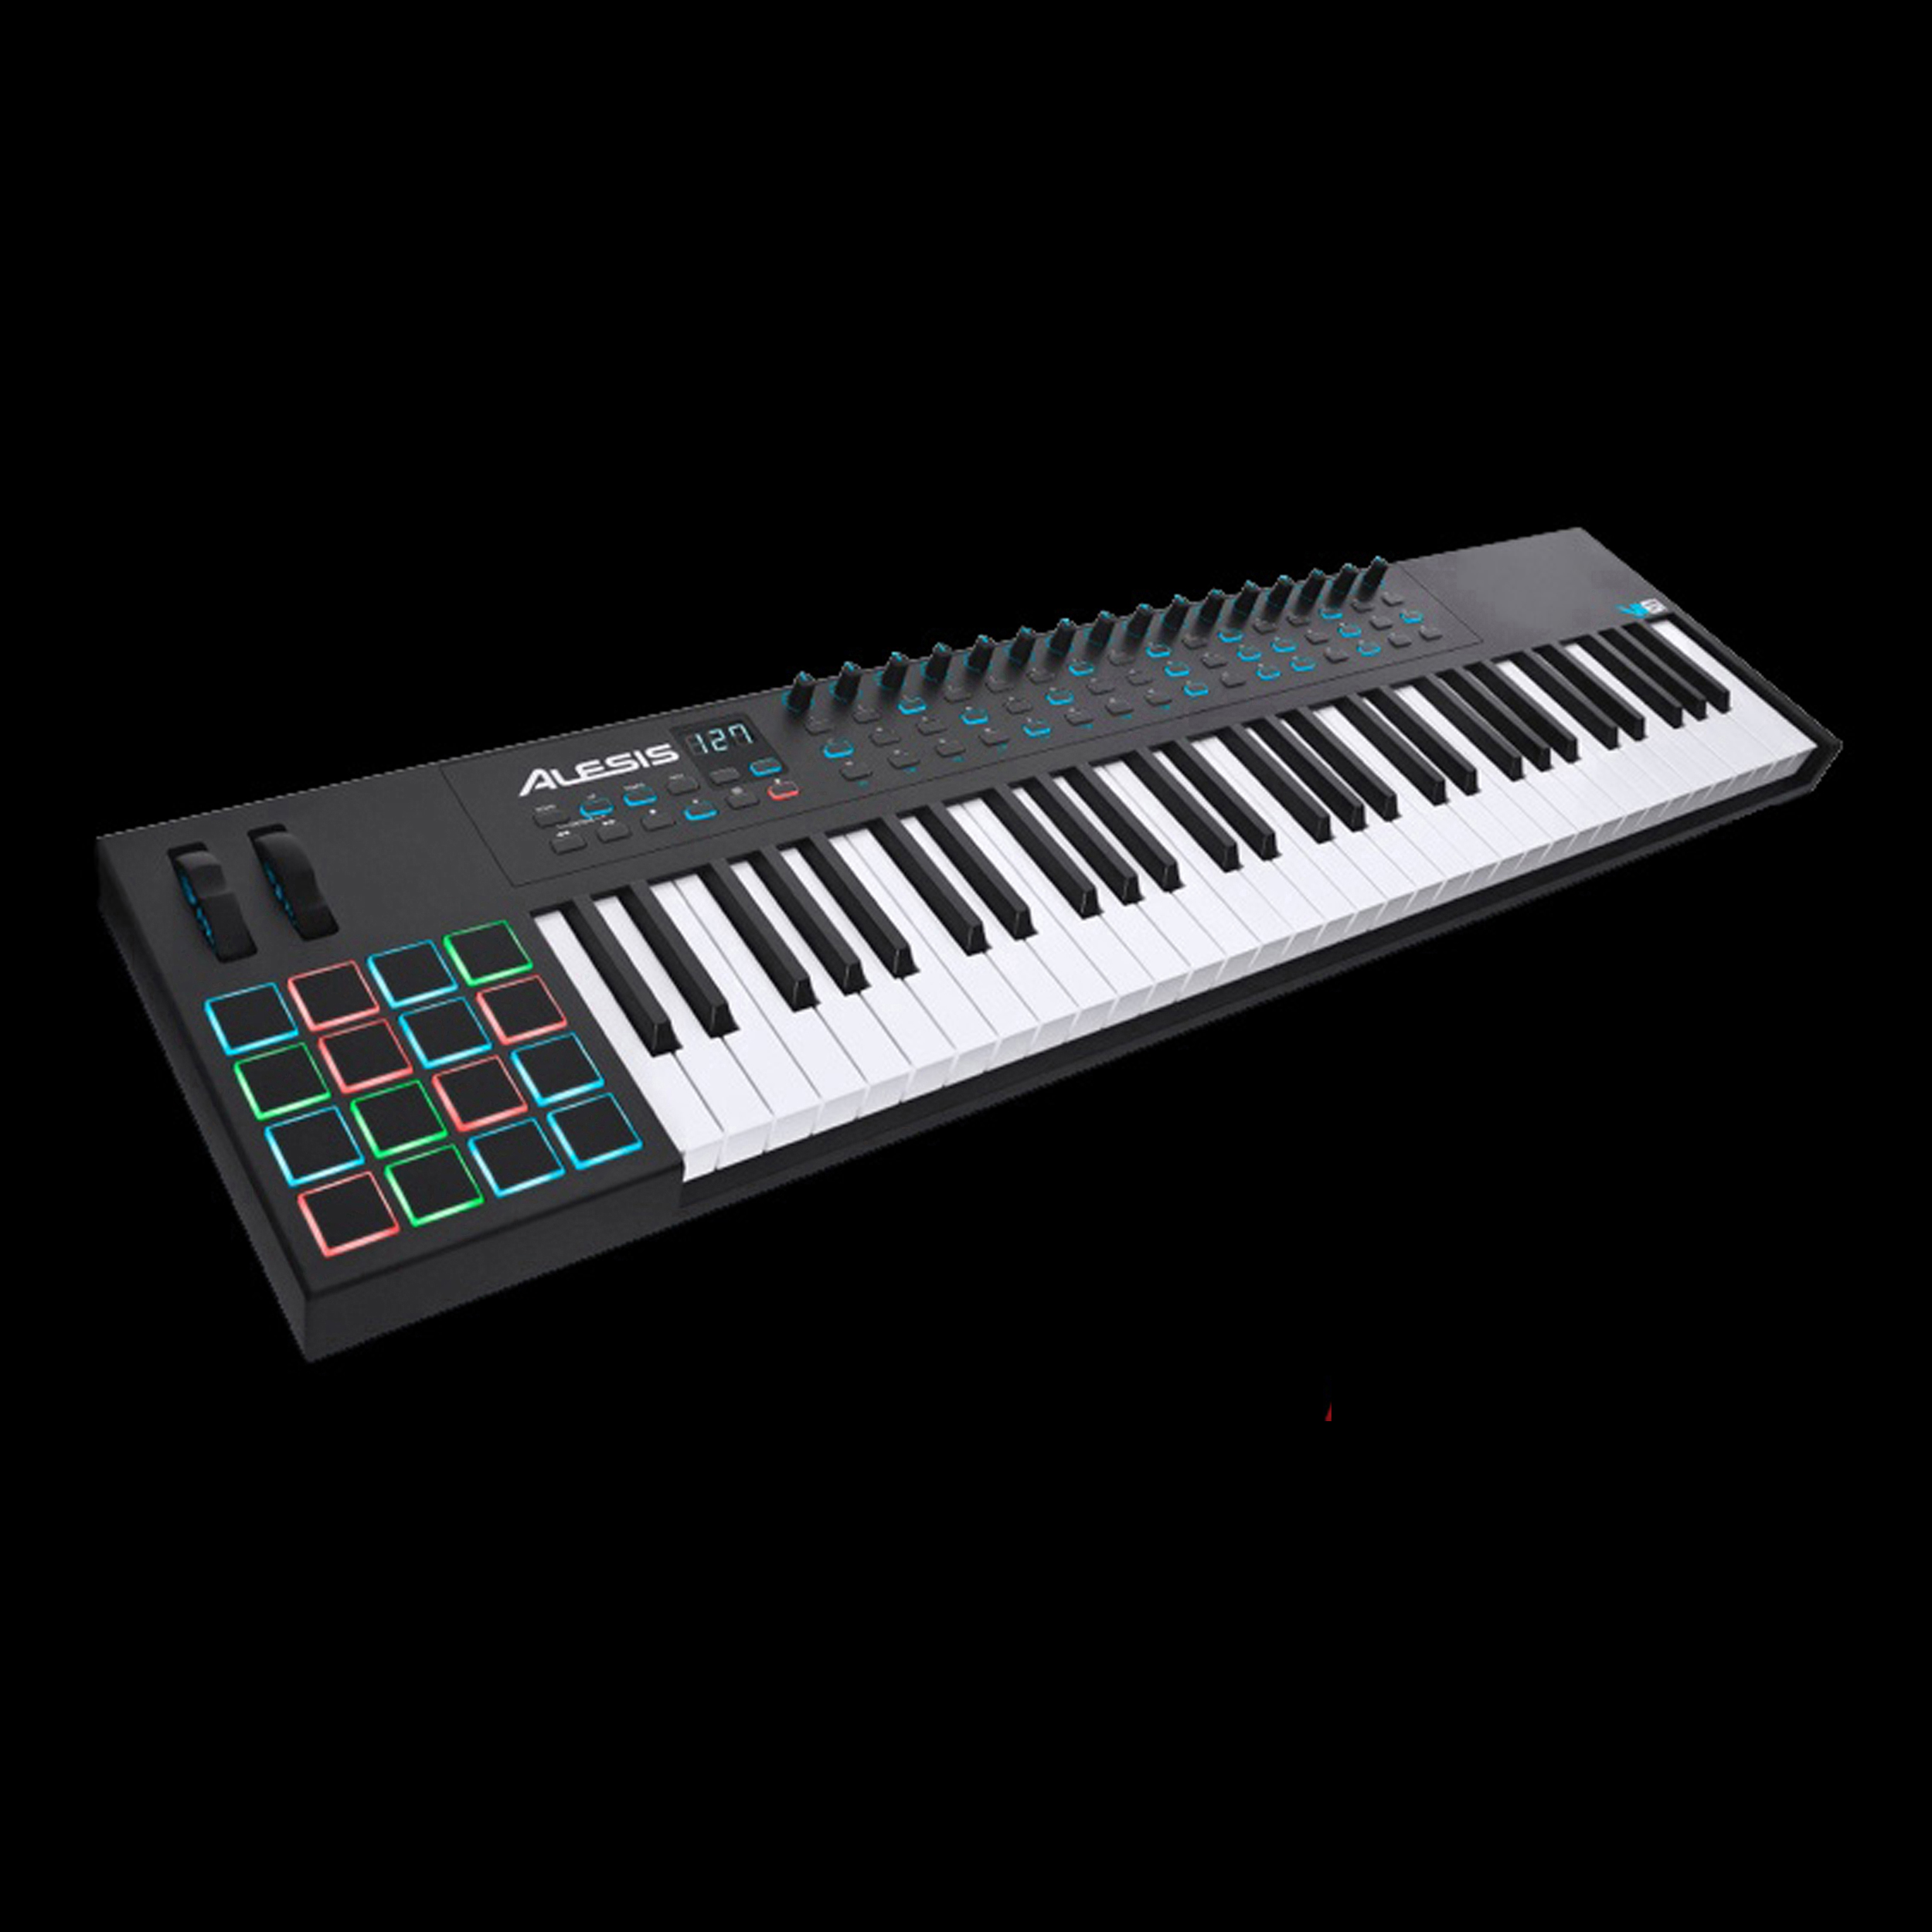 alesis vi61 advanced usb midi pad keyboard controller ebay. Black Bedroom Furniture Sets. Home Design Ideas